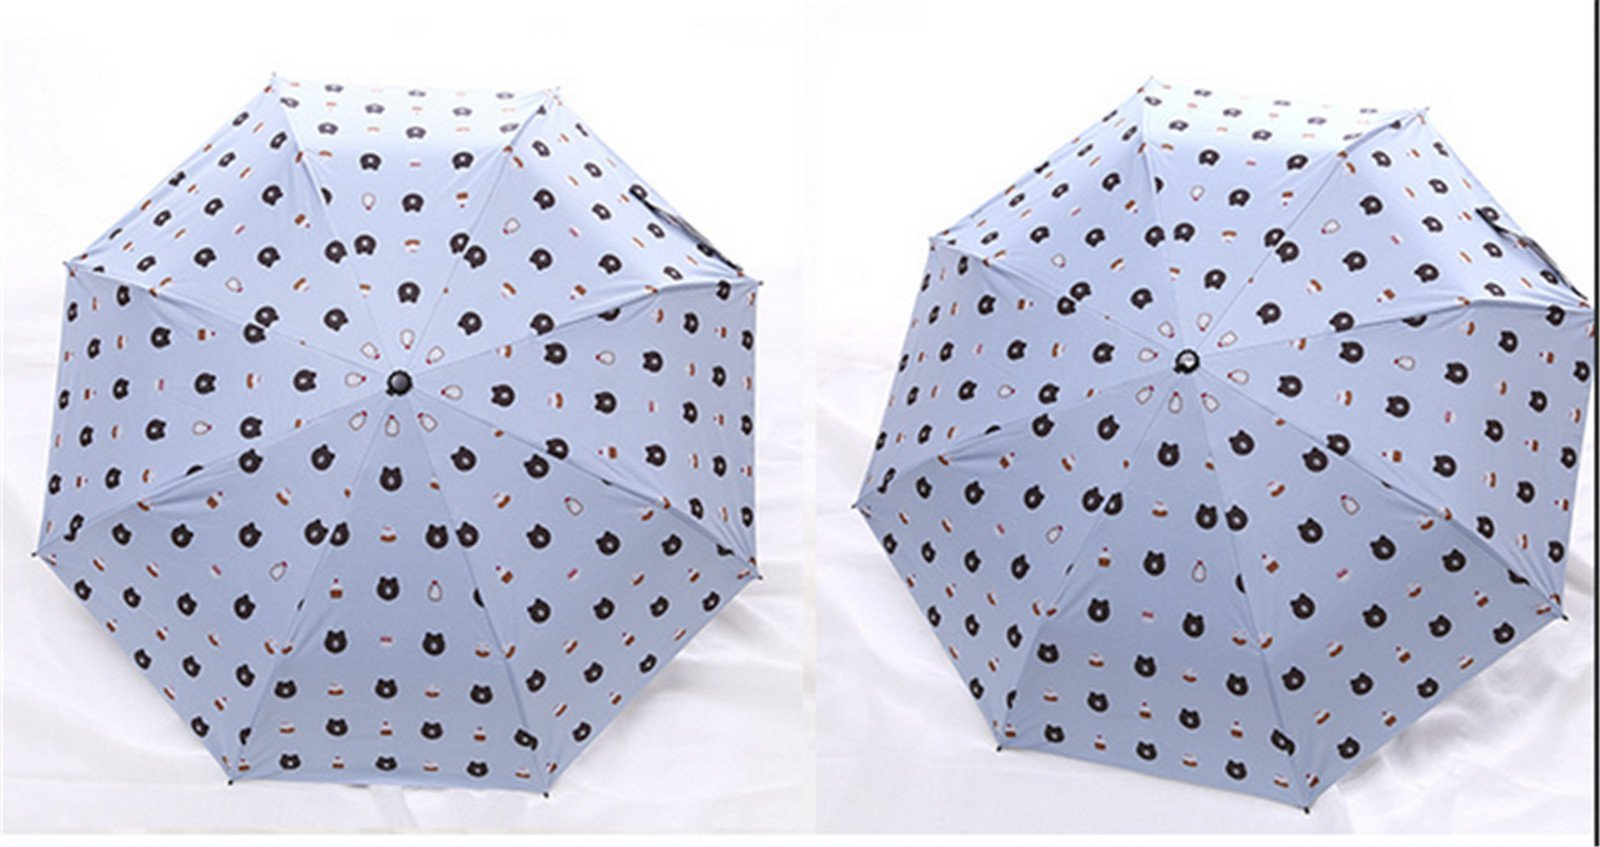 GKRY Fashion Art Umbrella/Windproof Travel Umbrellas/Folding Umbrella/for Business and Travels/SPF 352+ SUN RAIN Umbrella/RAIN Umbrella The ultra fine umbrella blue sky. by GKRY Home (Image #2)